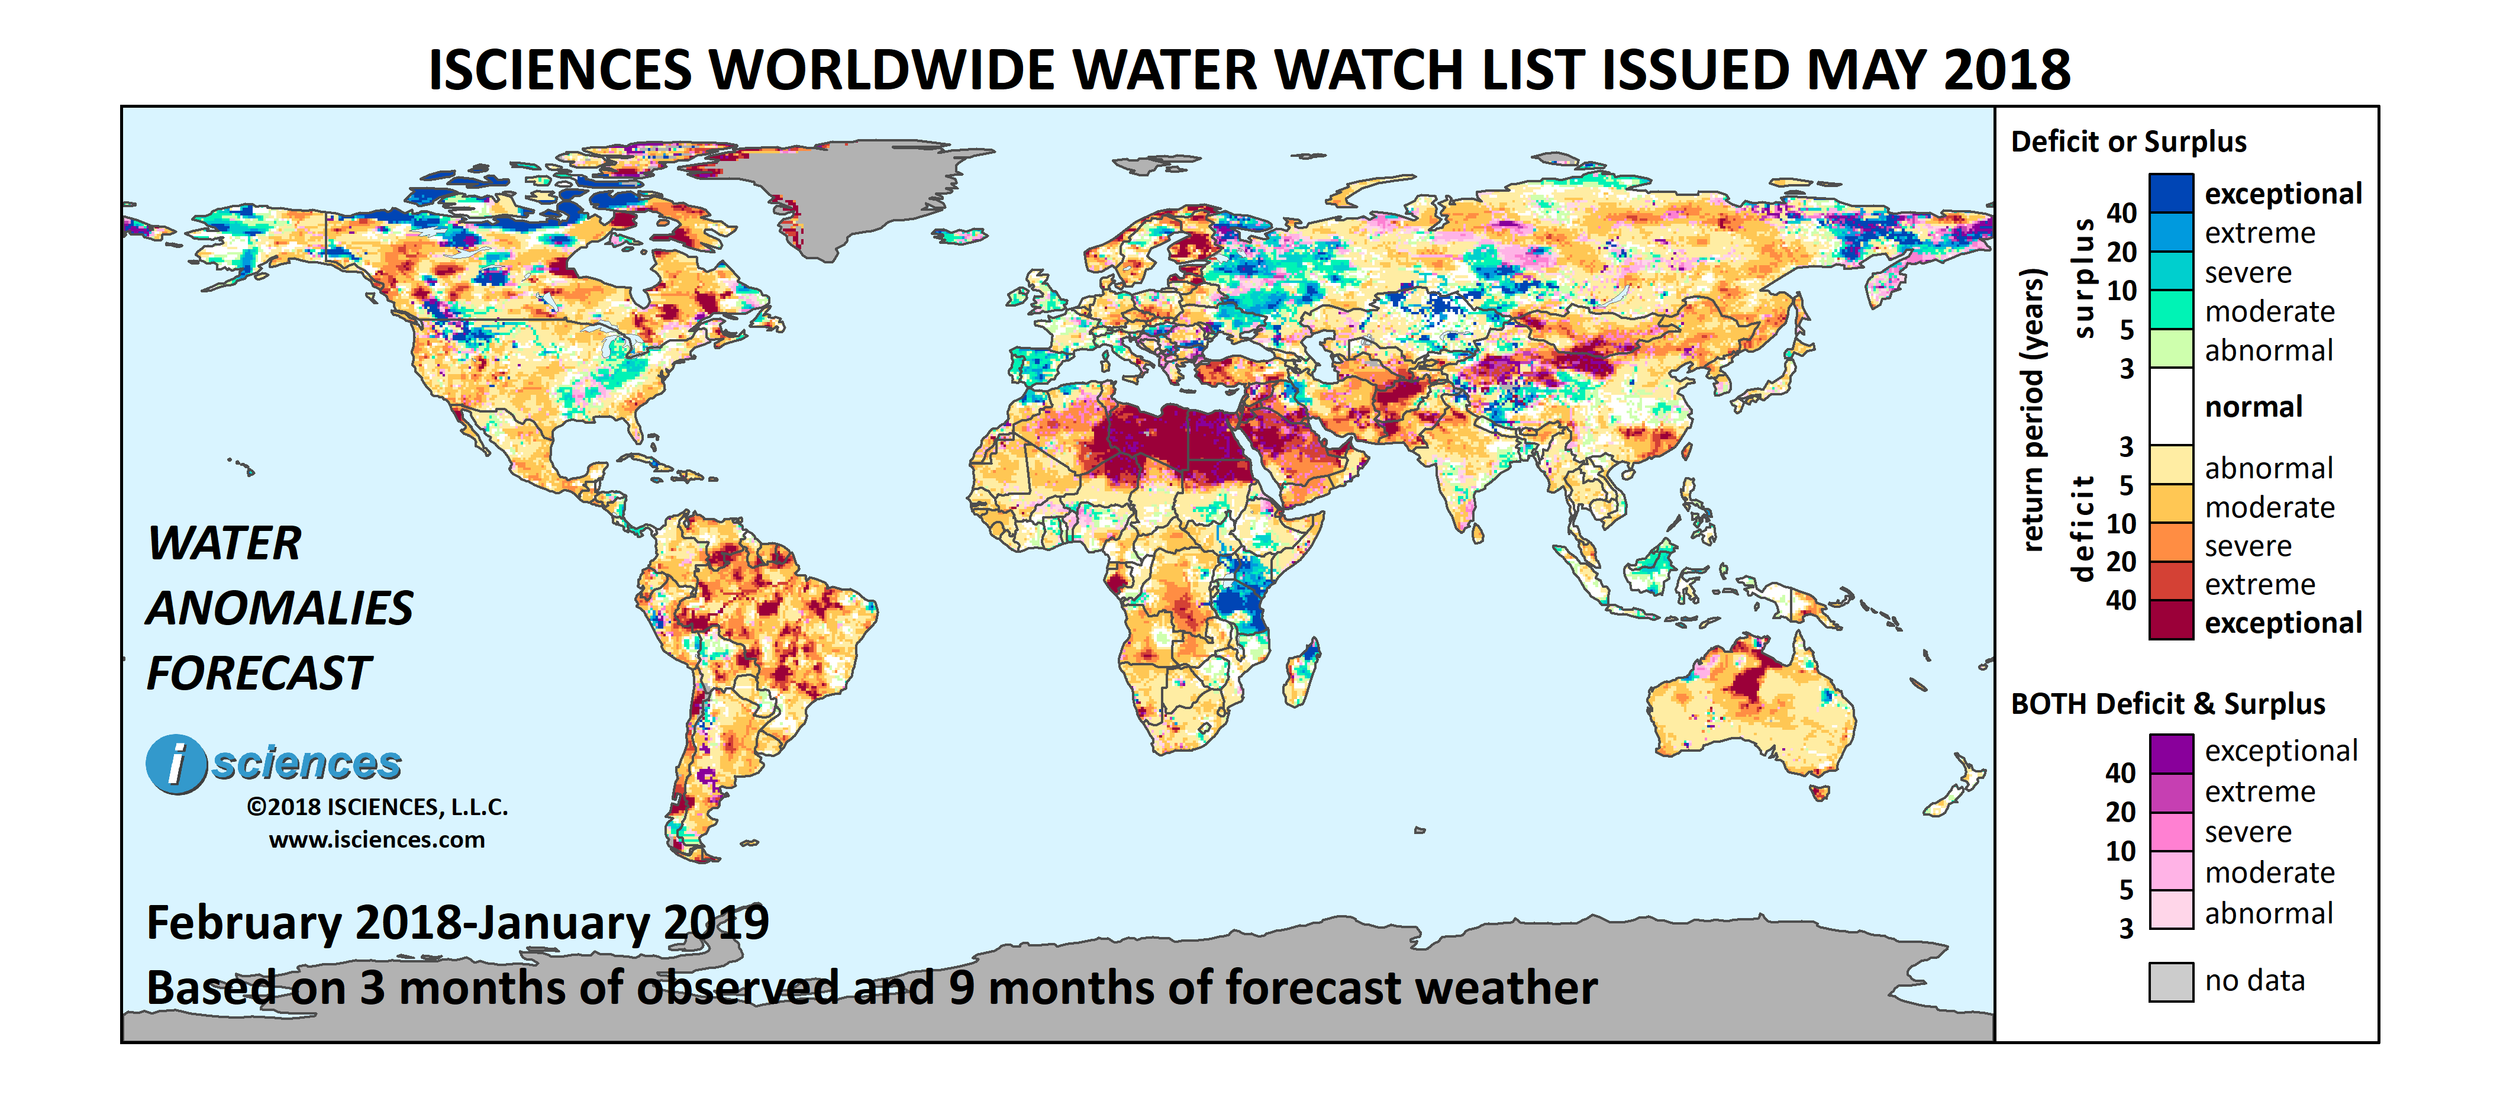 ISciences_Worldwide_Water_Watch_List_2018_May.png